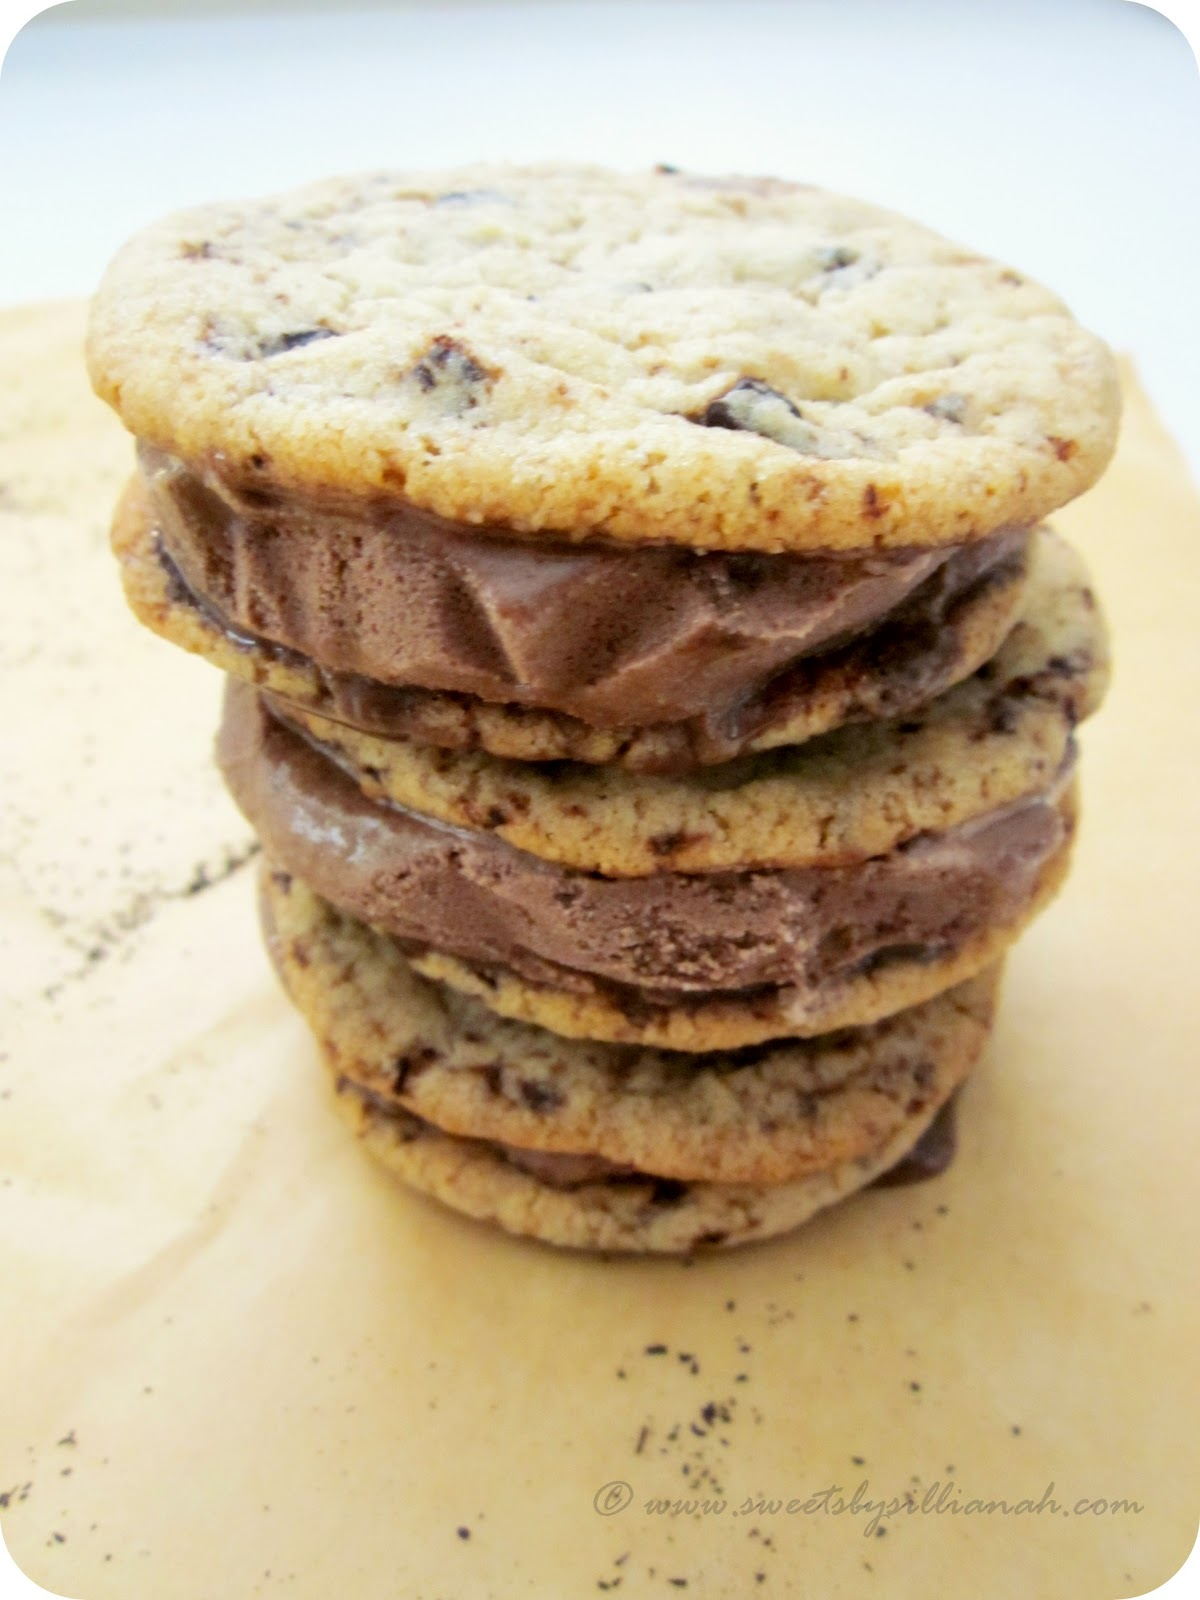 ... Earl Grey Ice Cream Sandwiches & The Best Chocolate Chip Cookies Ever